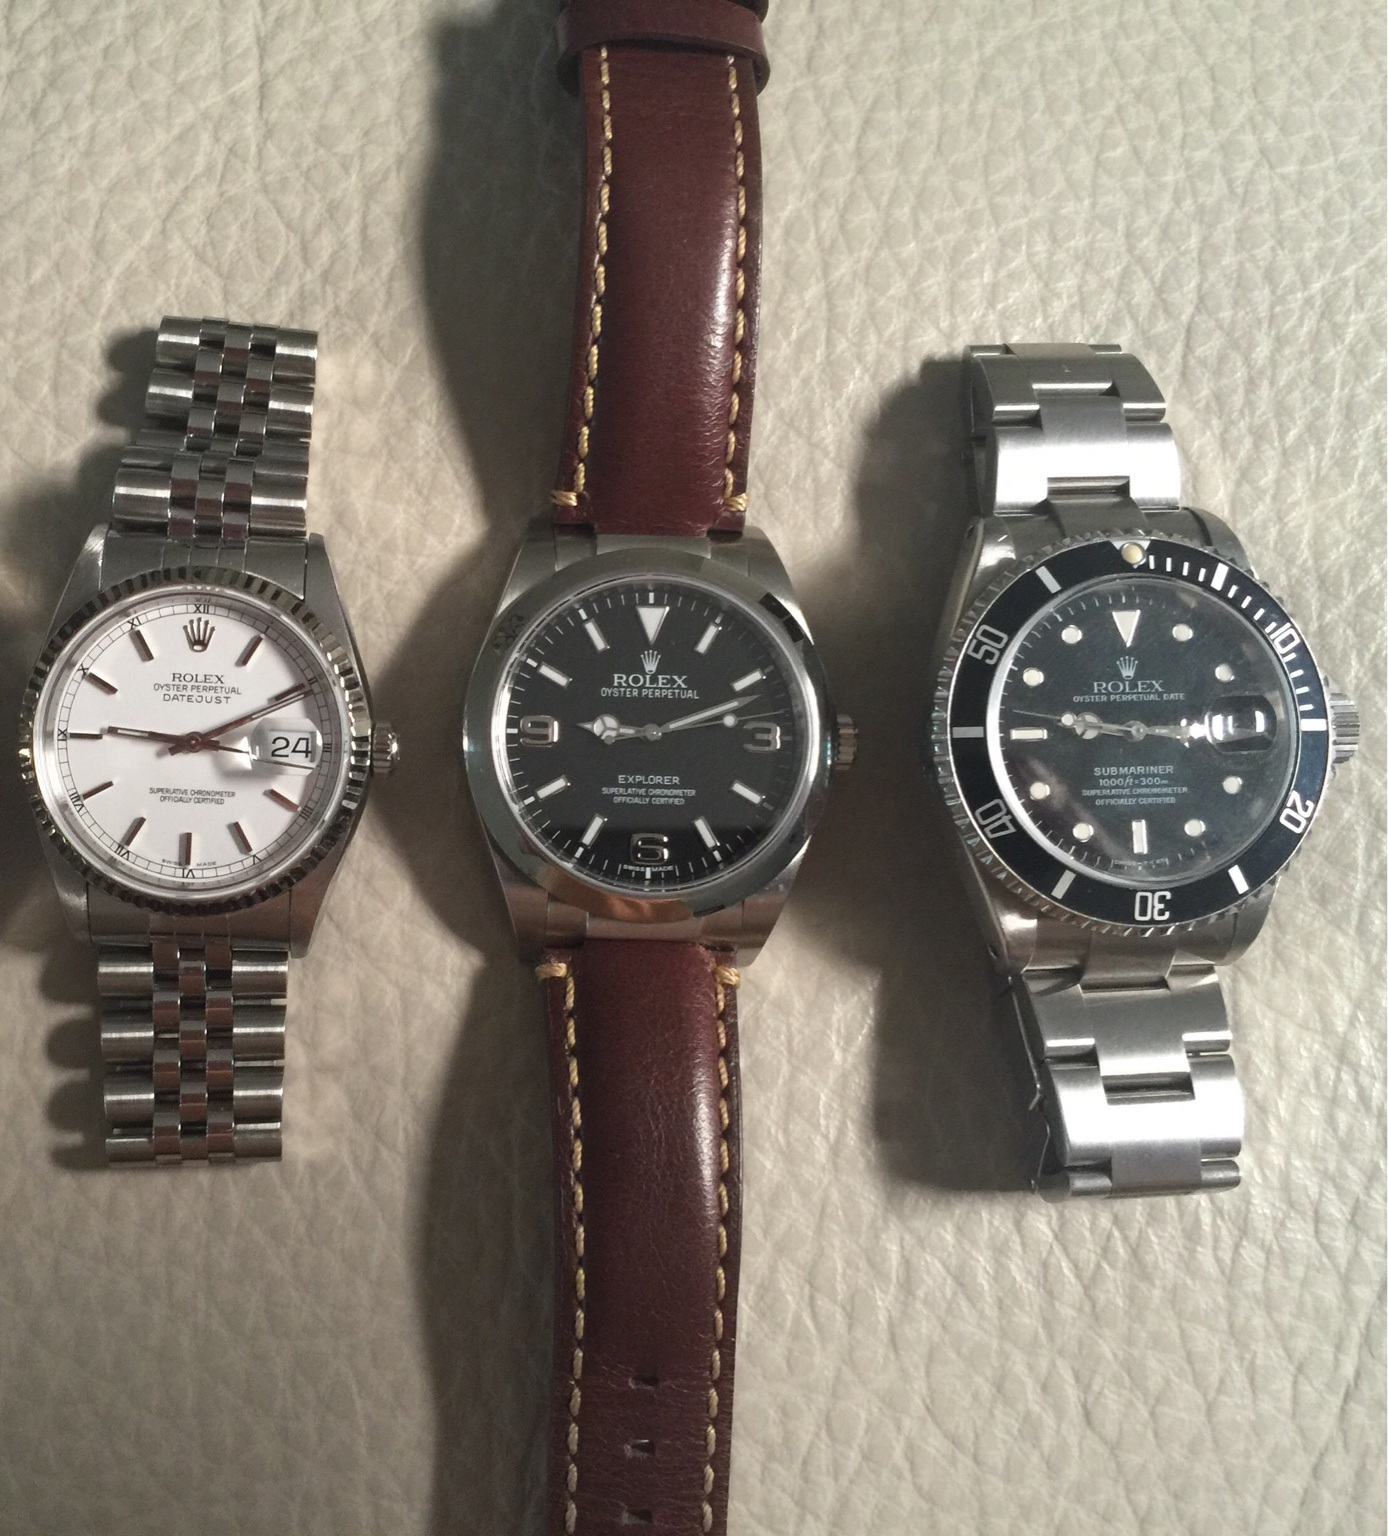 Is The Explorer I 39mm dial larger than submariner or